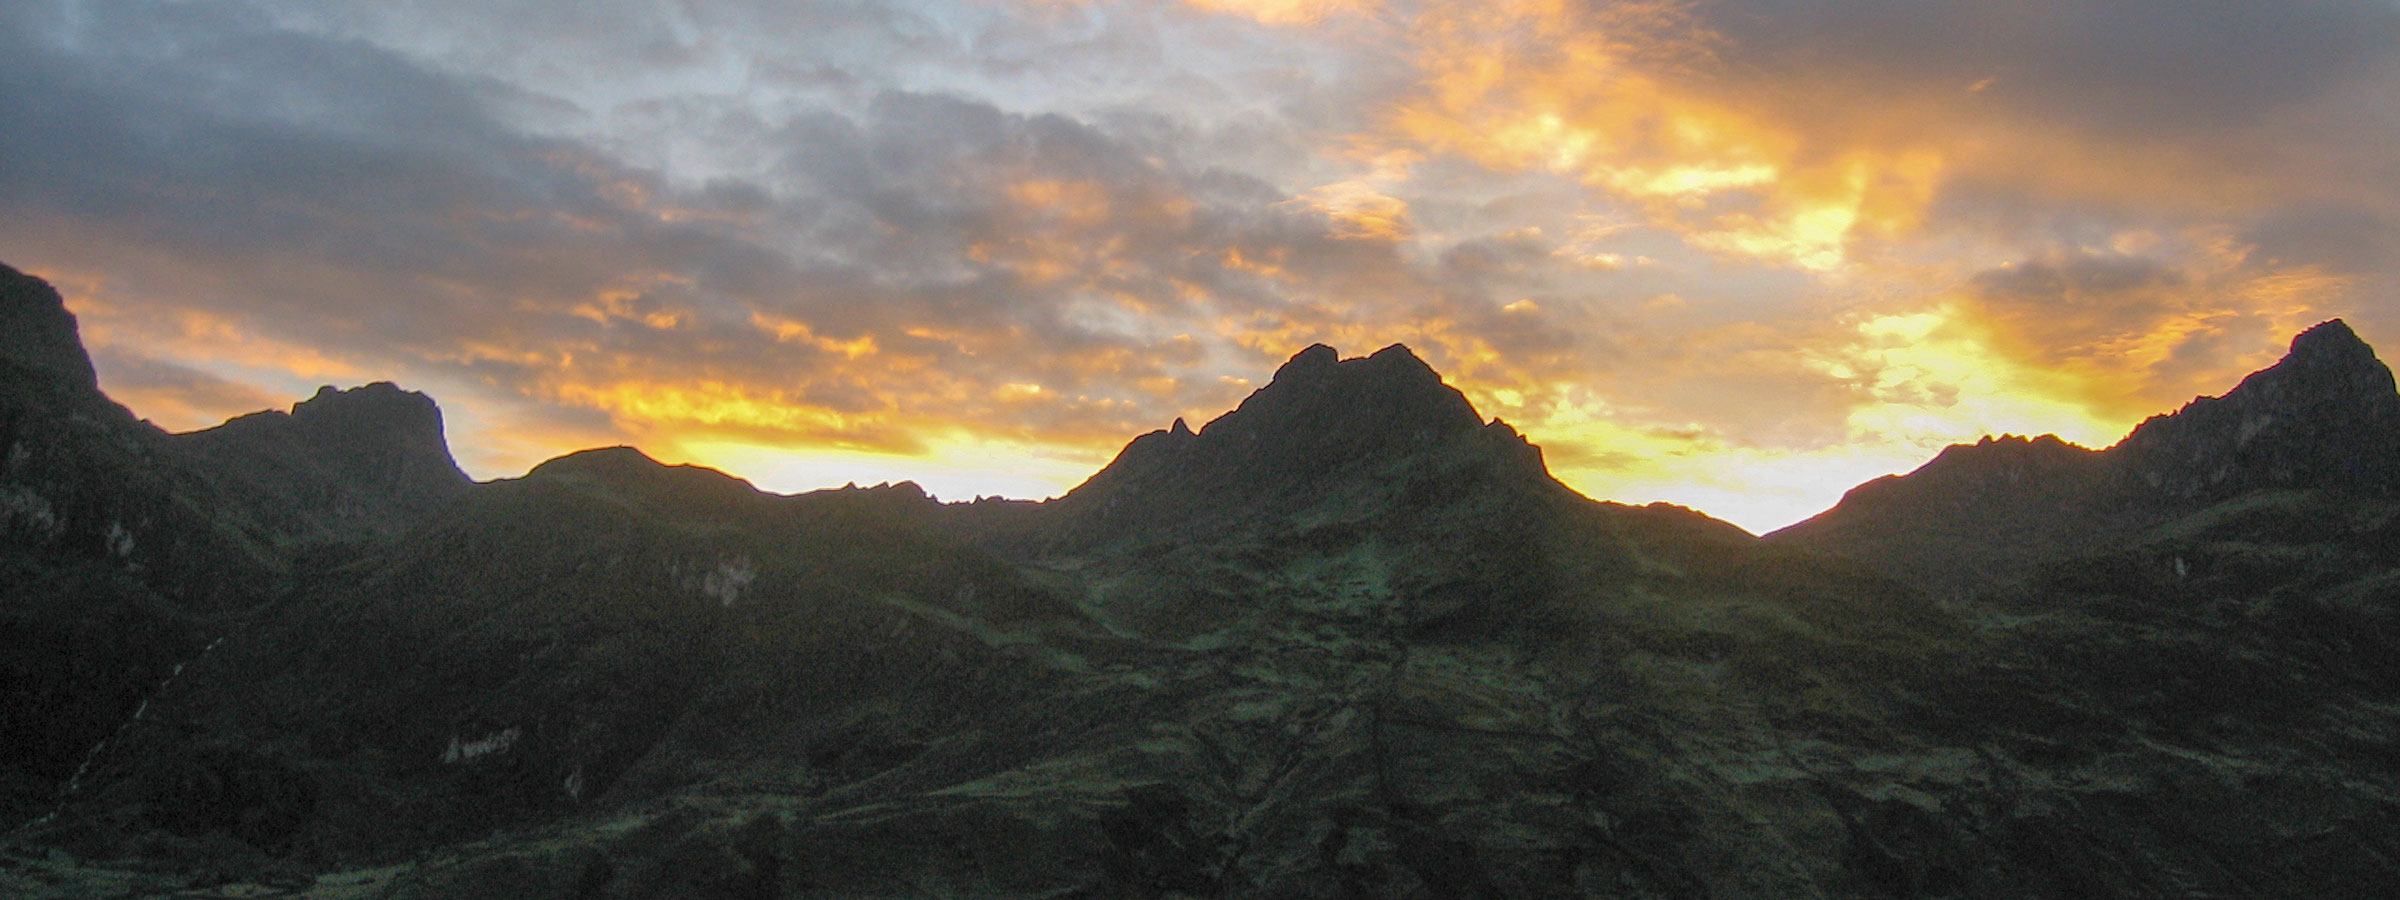 The Lares Trek is an off-the-beaten trail that begins near the town of Lares, 40 miles north of Cusco and 35 miles south east of Machu Picchu. The trek itself lies in the Lares Valley, east of the Urubamba mountain range, which traverses part of the Sacred Valley.